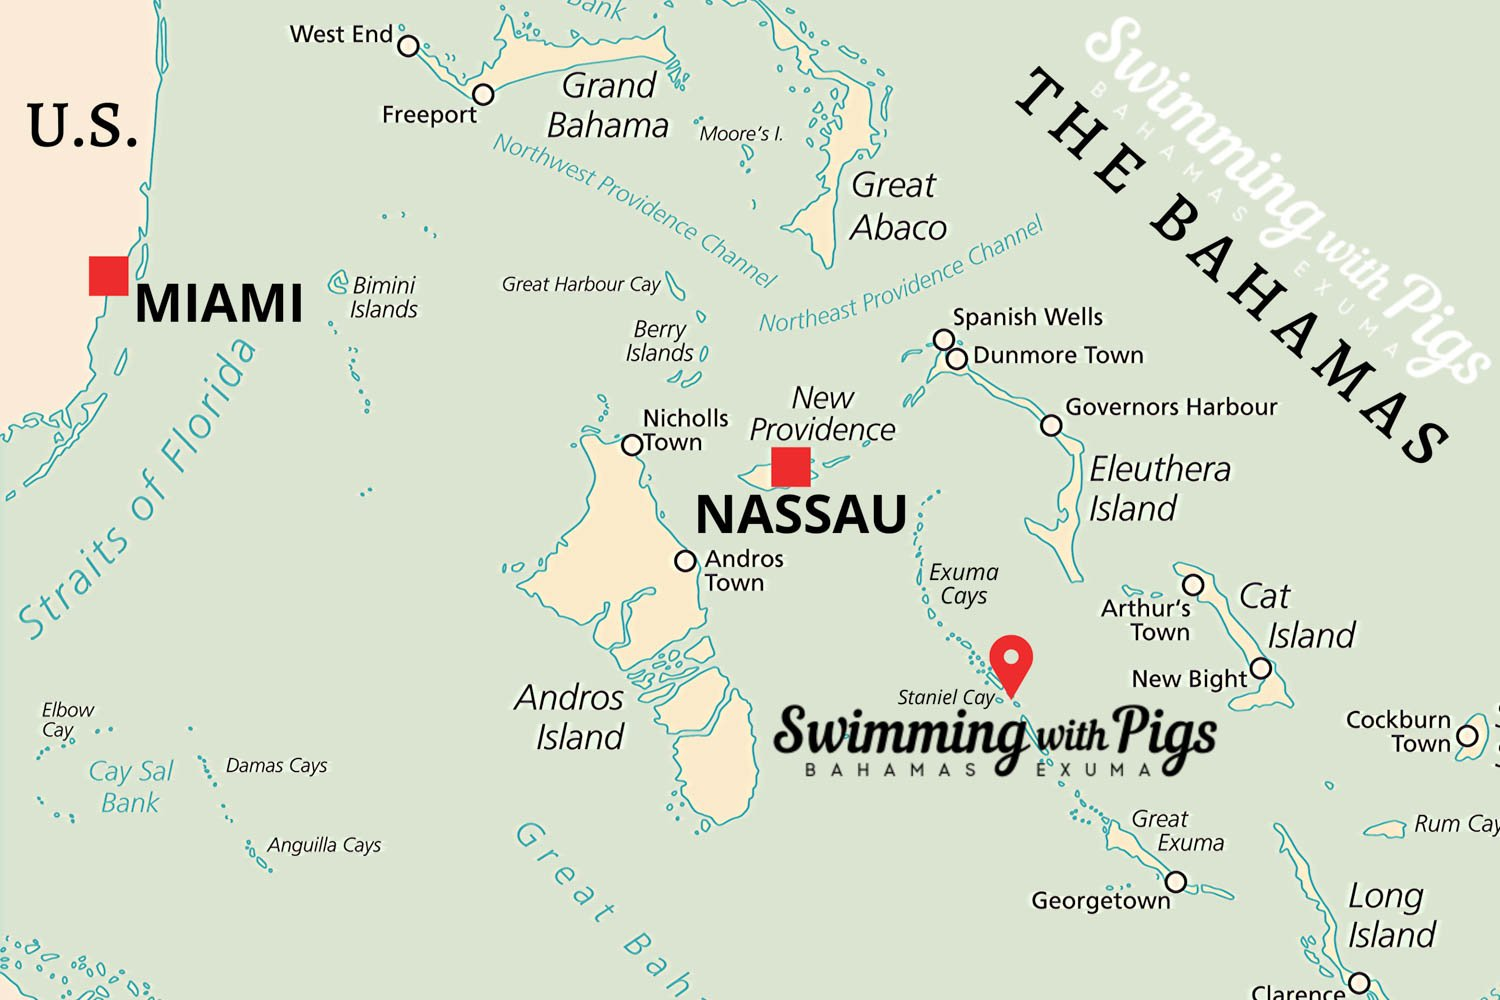 Pig Island tours from Nassau take roughly thirty minutes by air. Where is Pig Island? Just north of Staniel Cay.